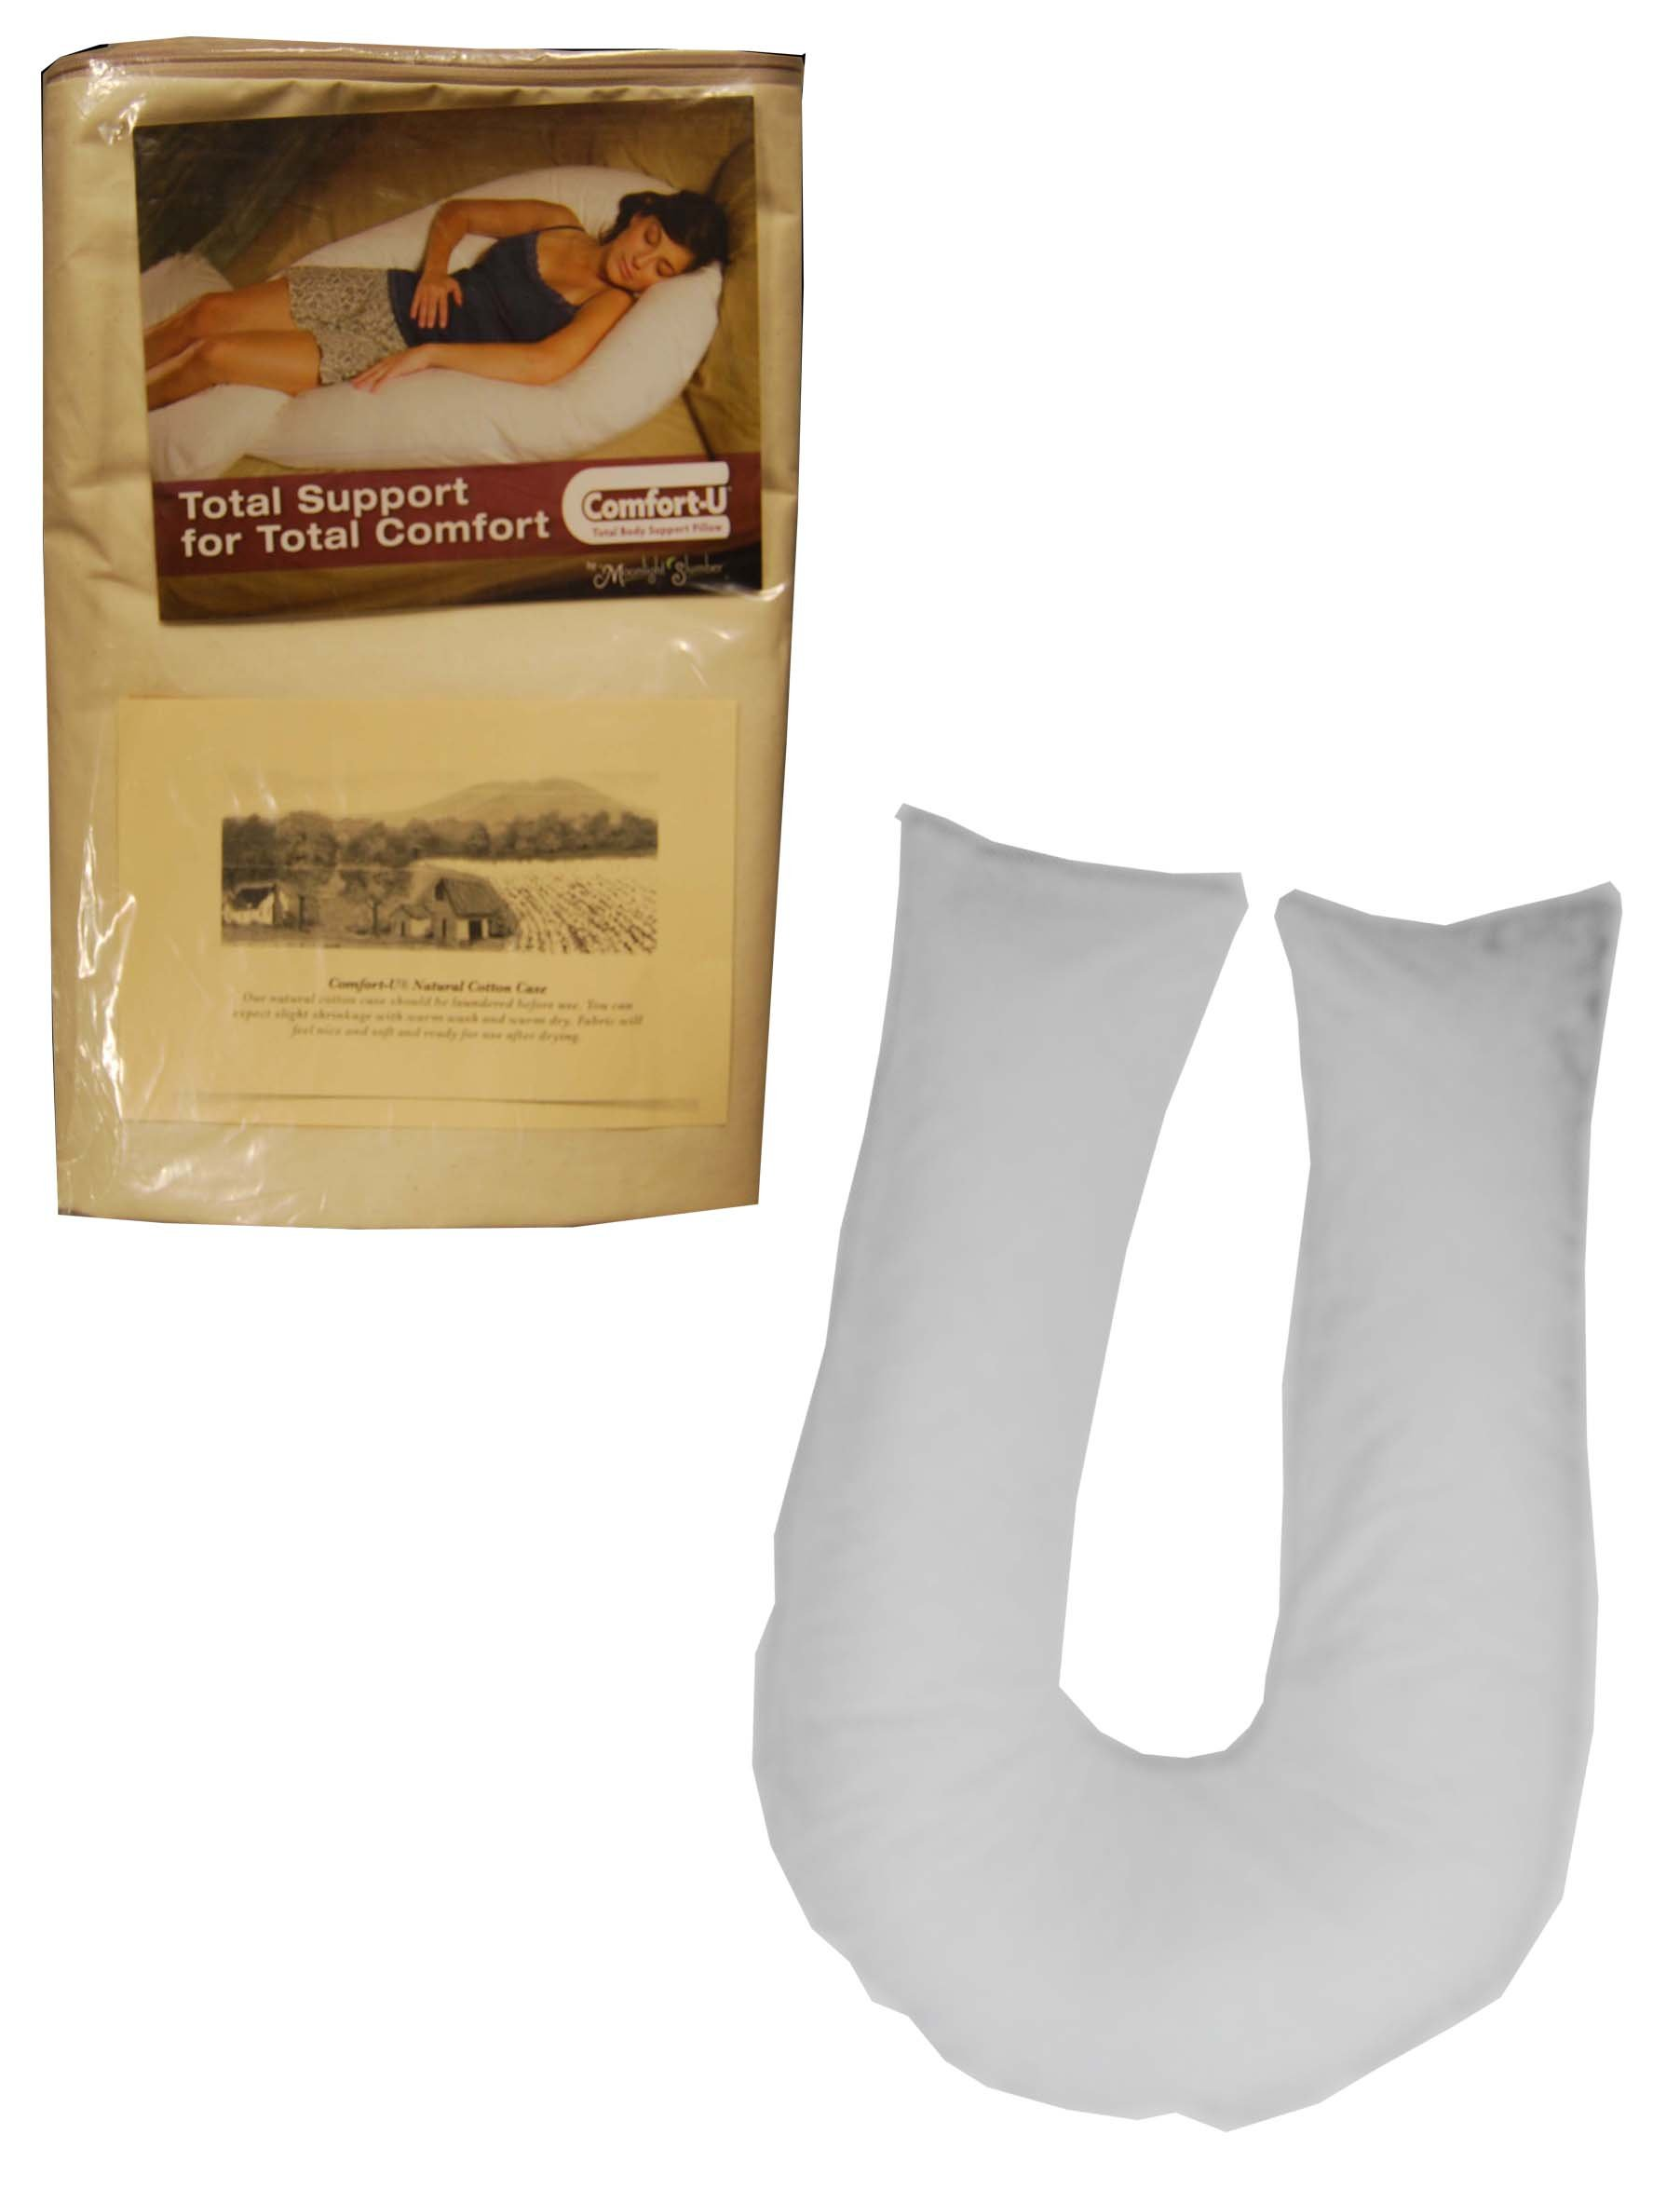 Comfort-U Total Body Full Support Pillow and an Additional 100% Cotton Natural Pillowcase(Package includes 2 Pillowcases)